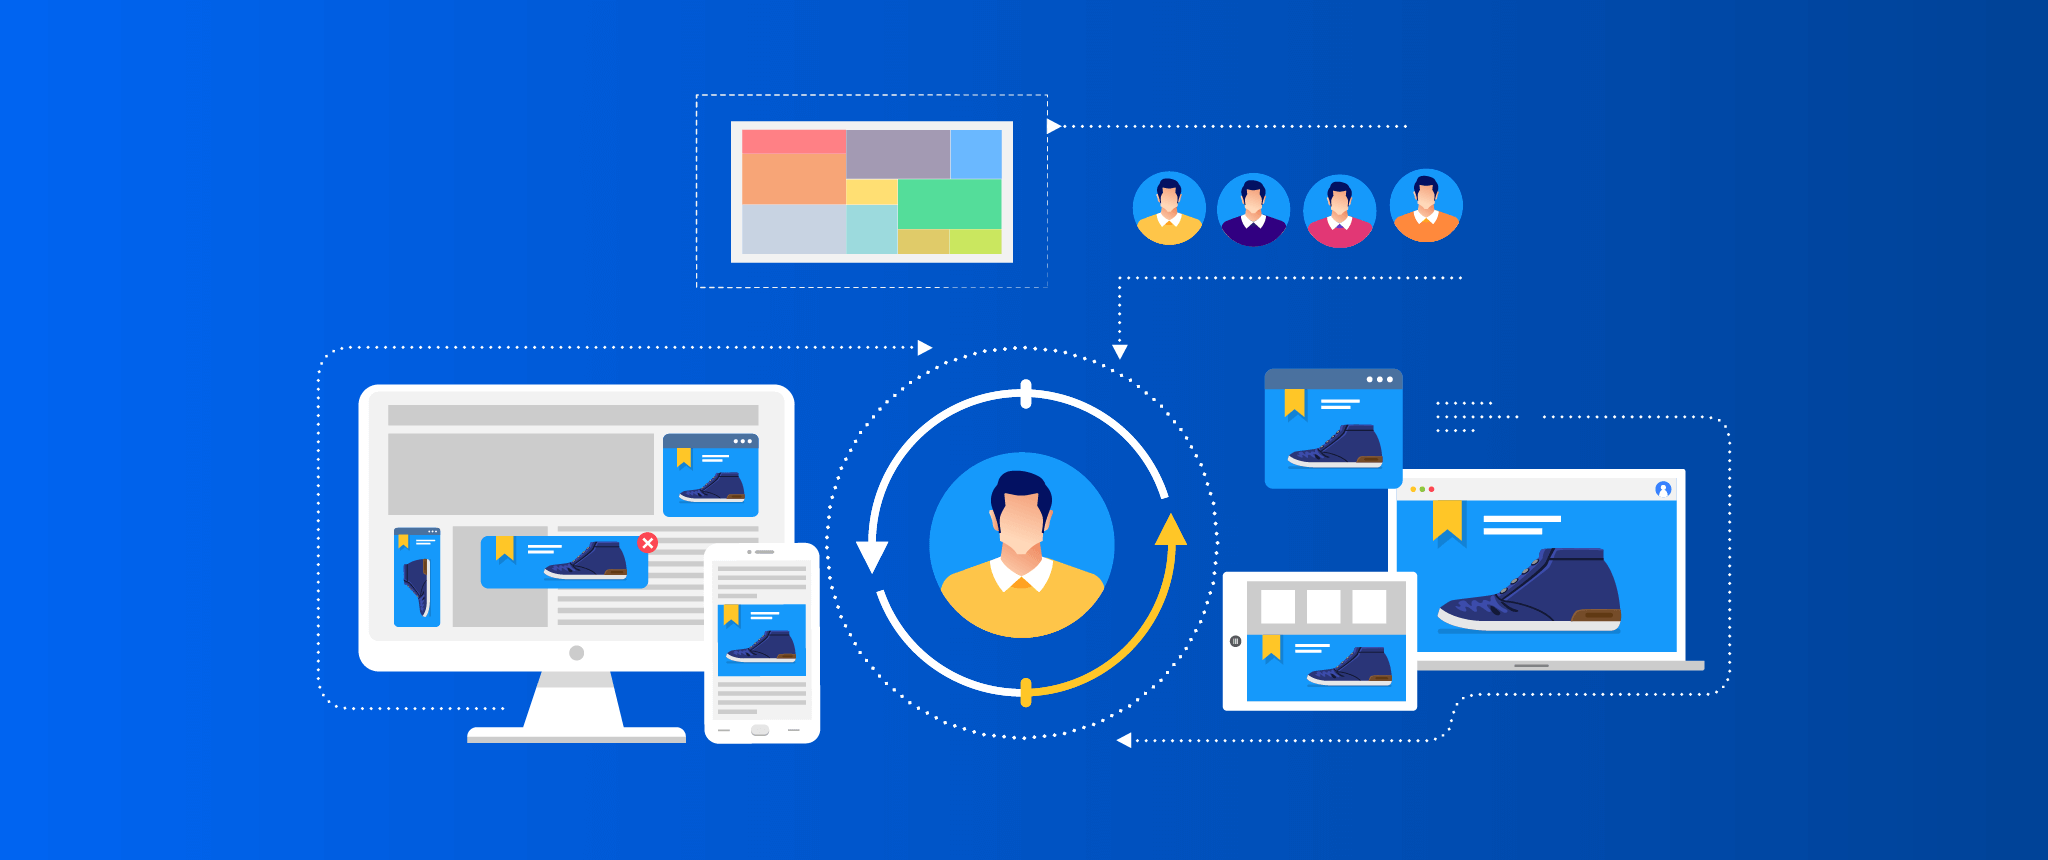 Use dynamic content for your retargeting ads